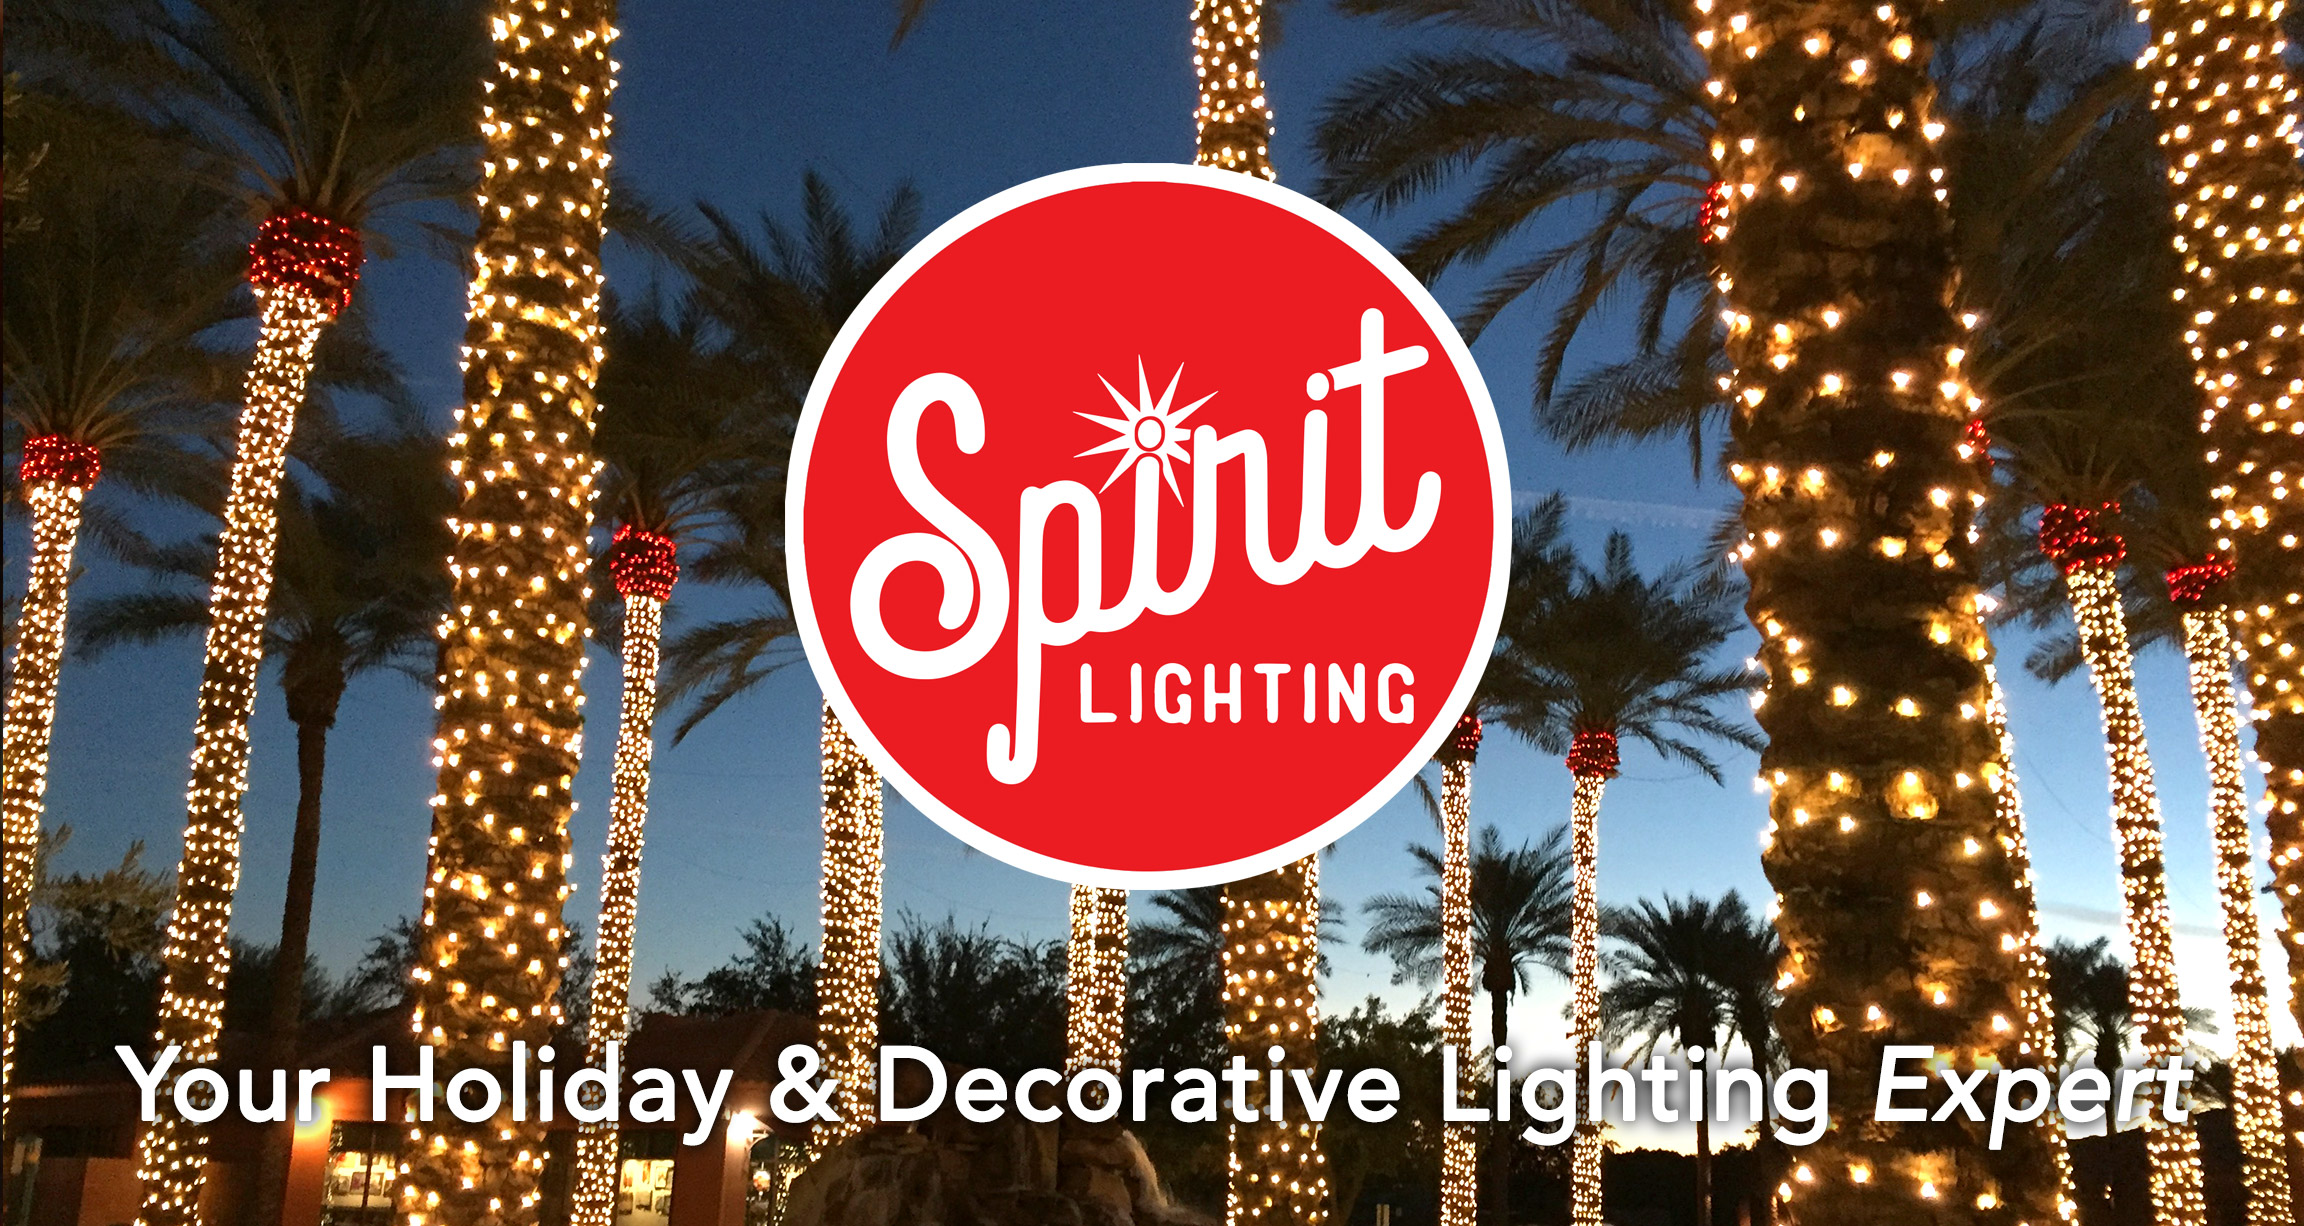 SPIRIT LIGHTING IS A FULL SERVICE HOLIDAY DECORATING COMPANY IN PHOENIX, ARIZONA. Spirit Lighting will design, install, maintain, and remove a professional holiday display for your business or home.